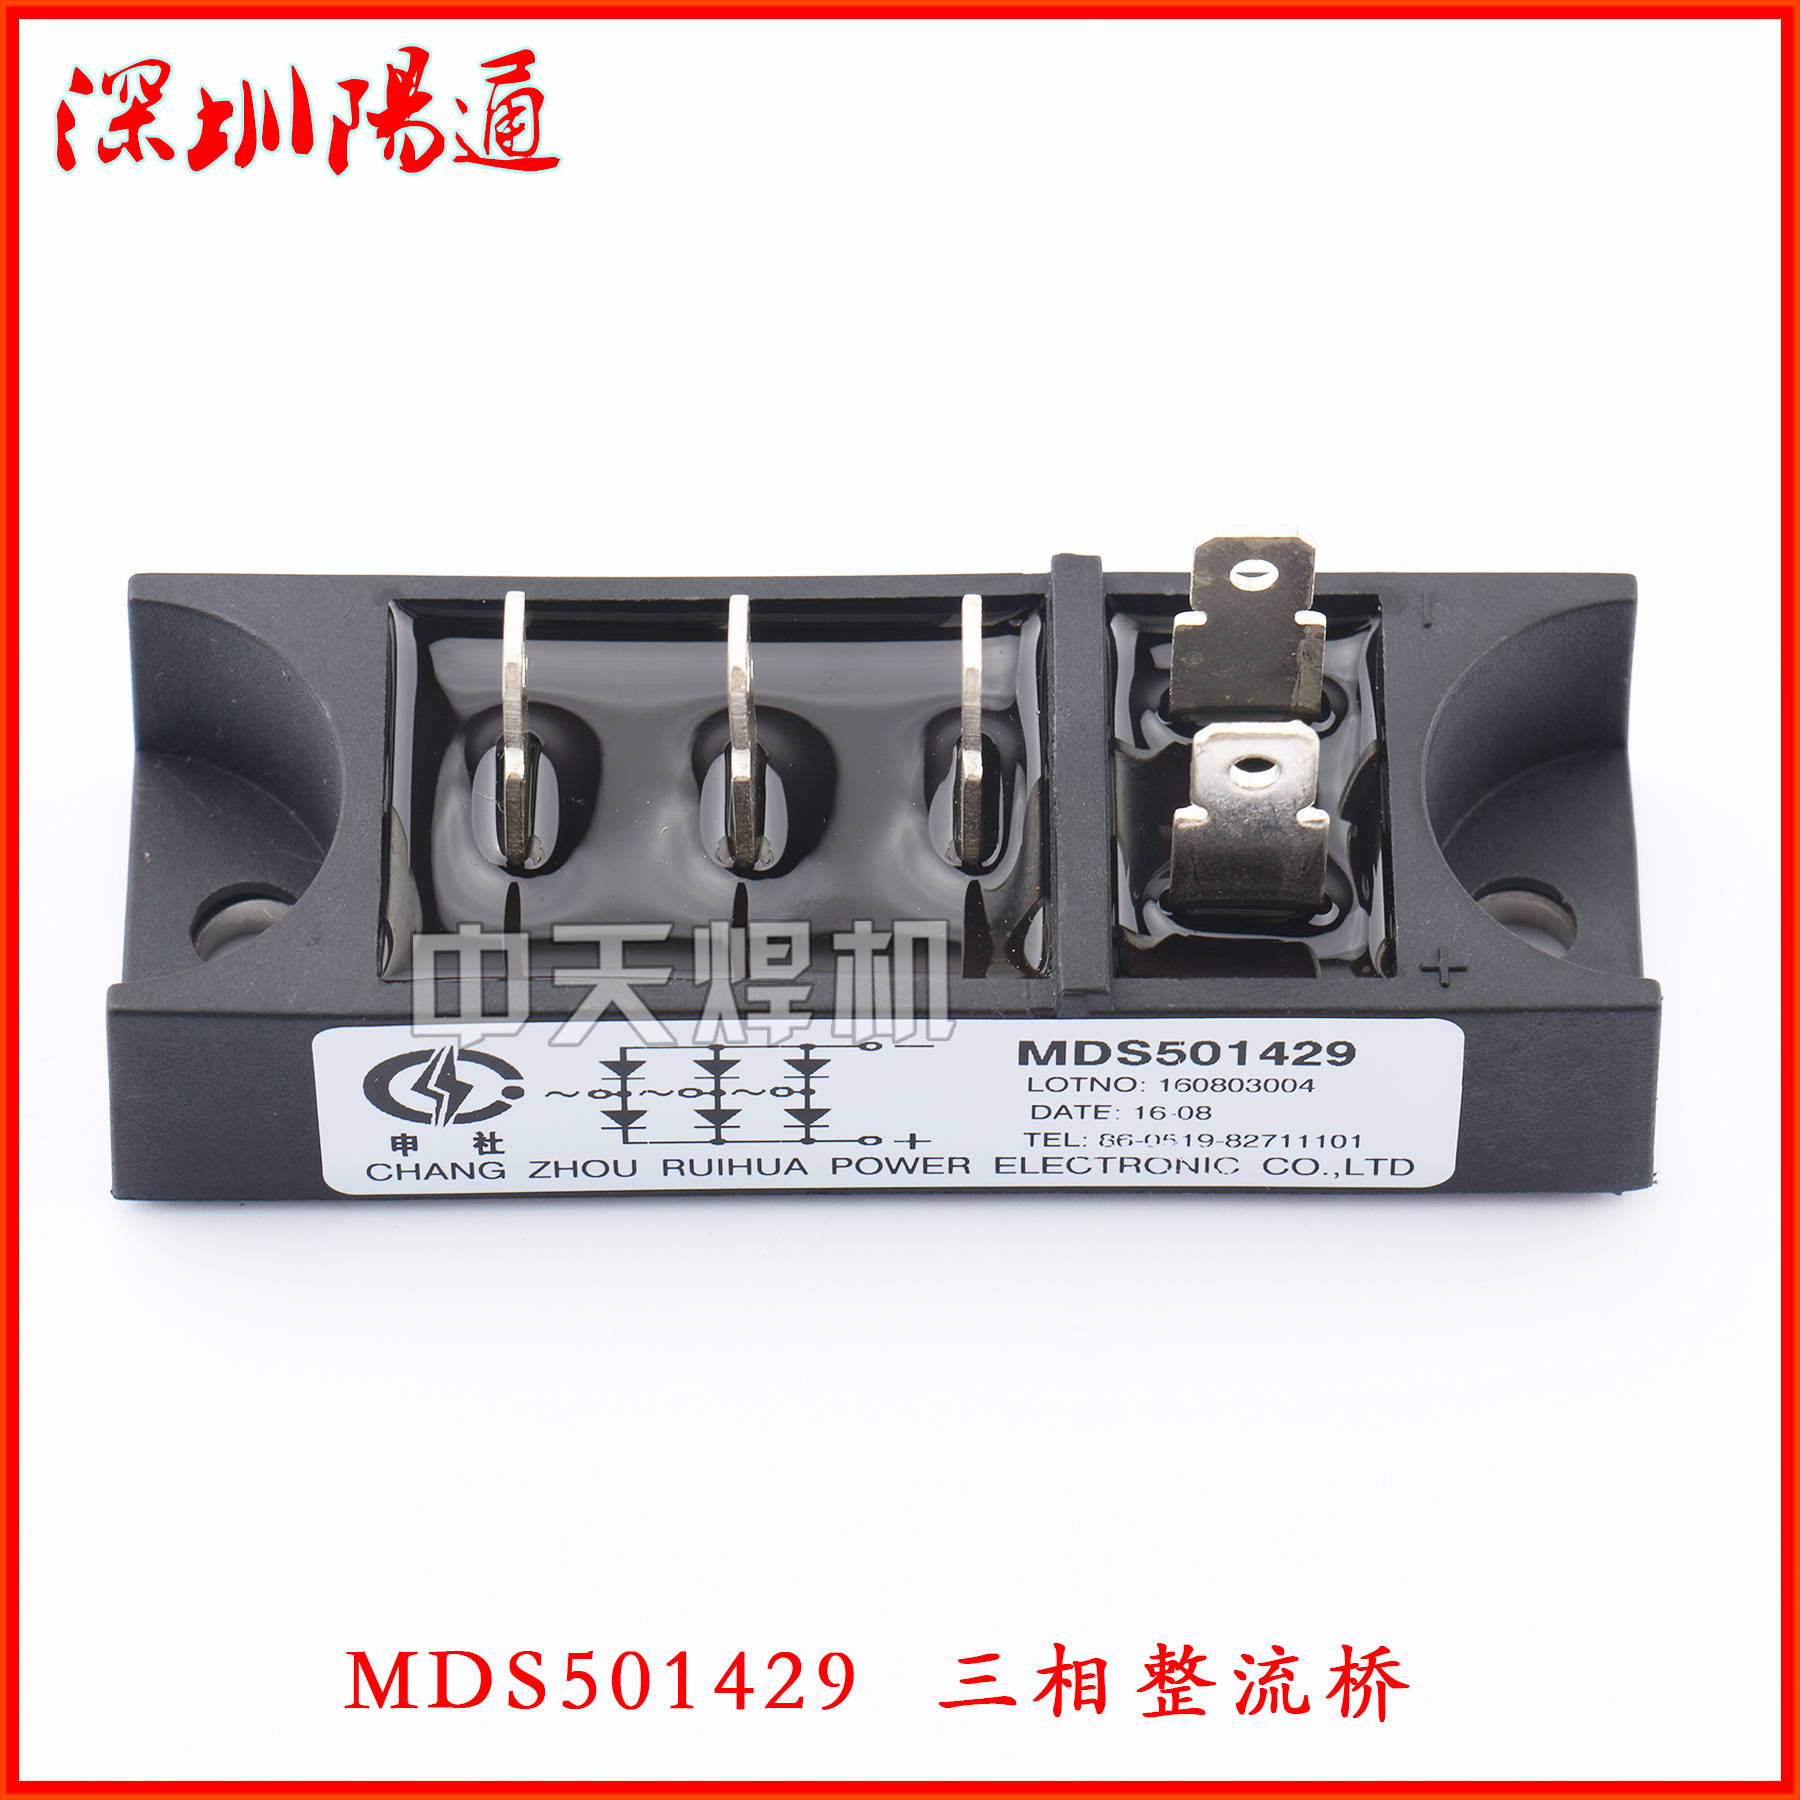 50A1400V Bridge with MDS501429 Three-phase Rectifier Silicon Bridge MDS50-14 Welding Machine mitsubishi 100% mds c1 rg mds c1 rg